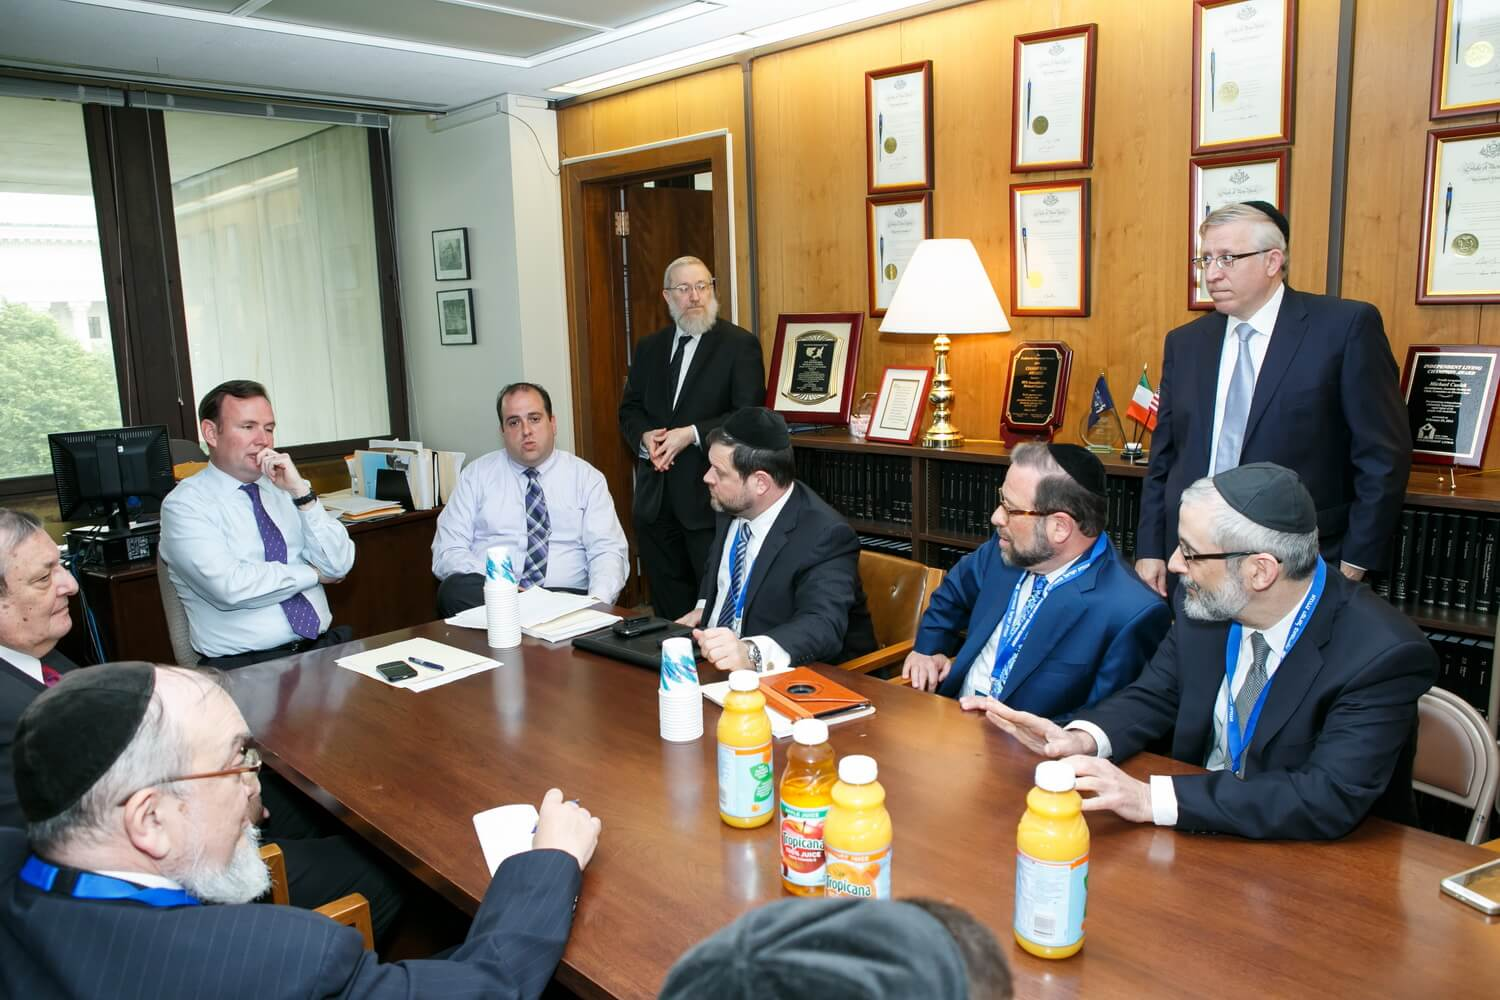 PHOTOS BELOW: Agudath Israel Travels to Albany For Tuition